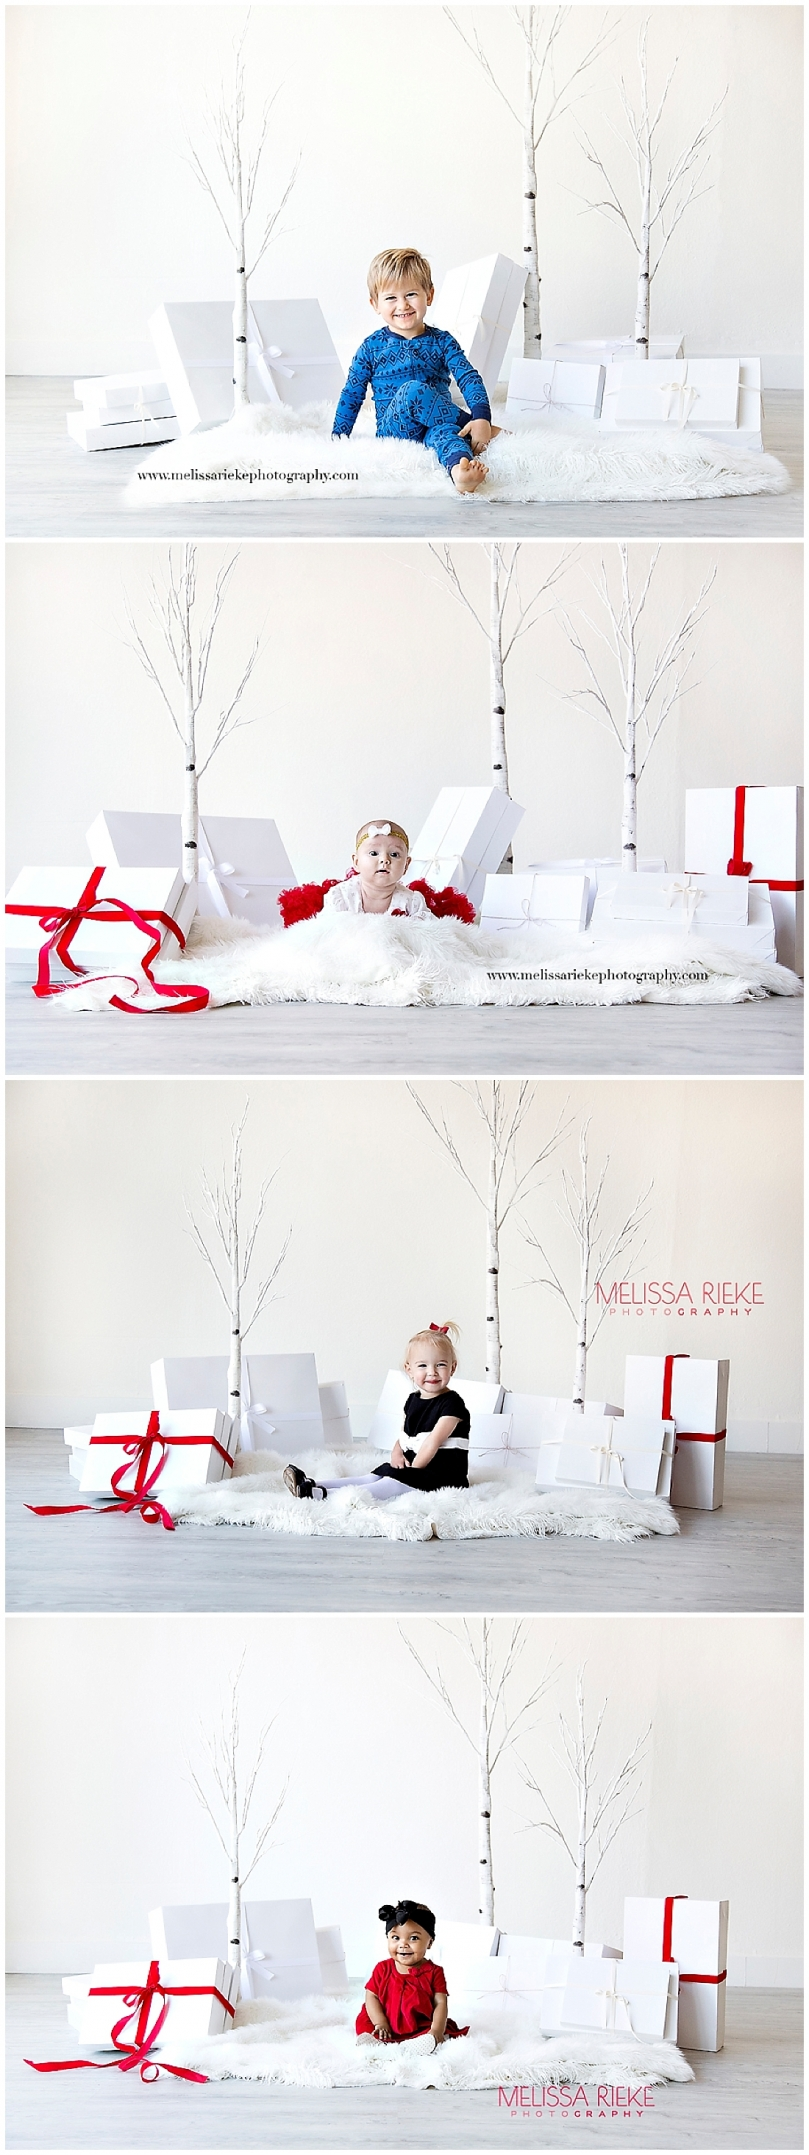 Christmas Pictures| Melissa Rieke Photography | www.melissariekephotography.com